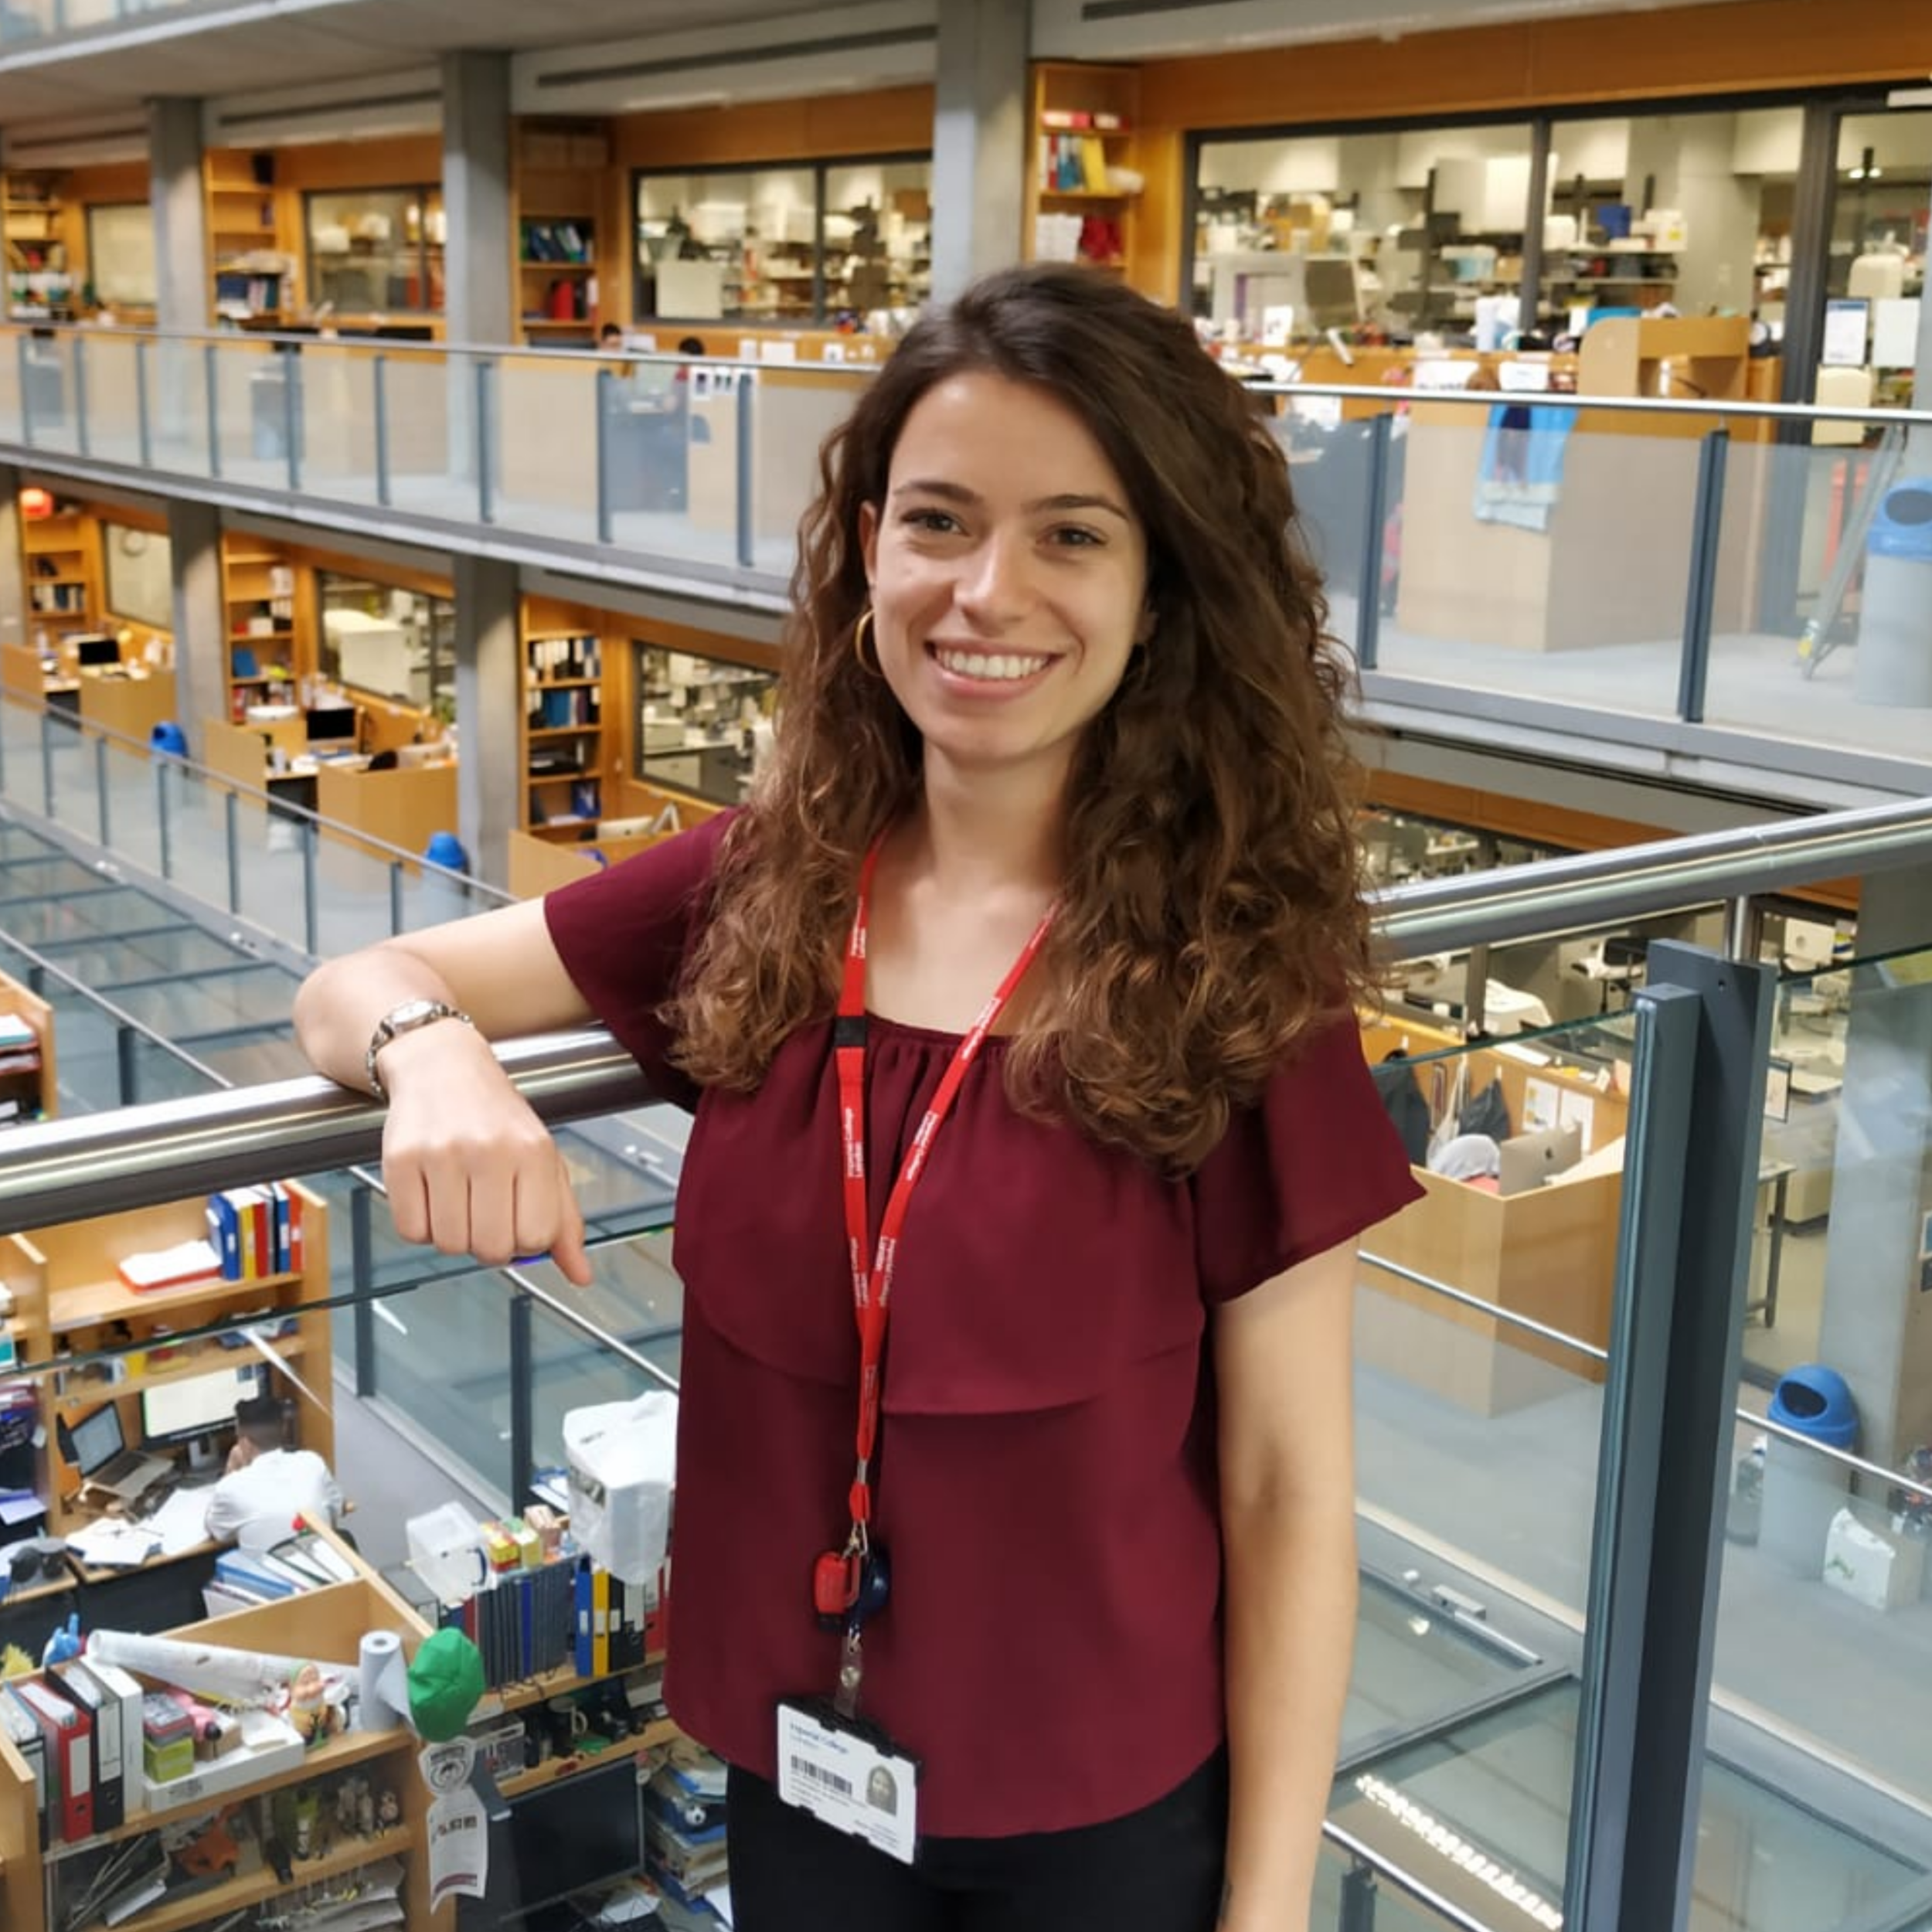 Natalia de Martin Garrido   Natalia graduated in Biochemistry from the University of Barcelona, she is now a PhD student in Dr. Aylett's team who aims to obtain further insights on protein complexes involved in molecular pathways controlling cell growth using cutting-edge structural biology methods.